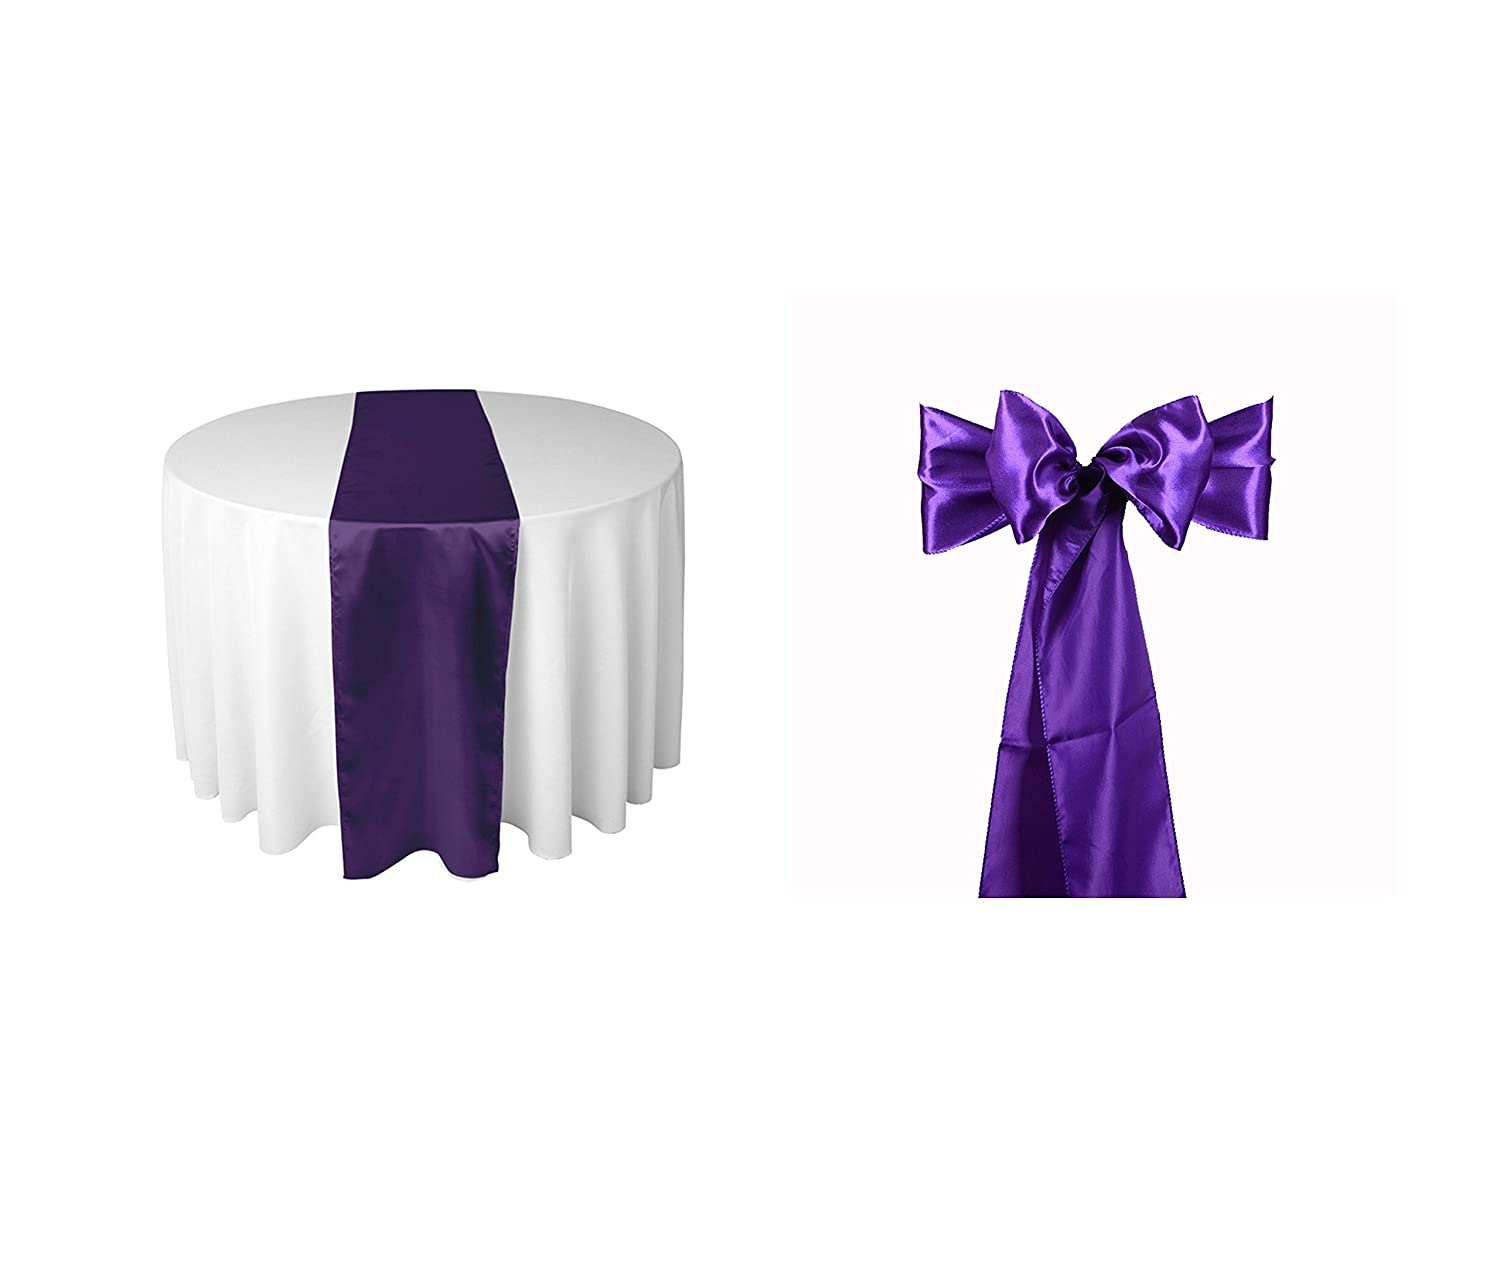 Elina Home Purple Satin 10 Table Runner & 50 Combo of TableRunner & Chair Bow Sash for Wedding Purple Purple